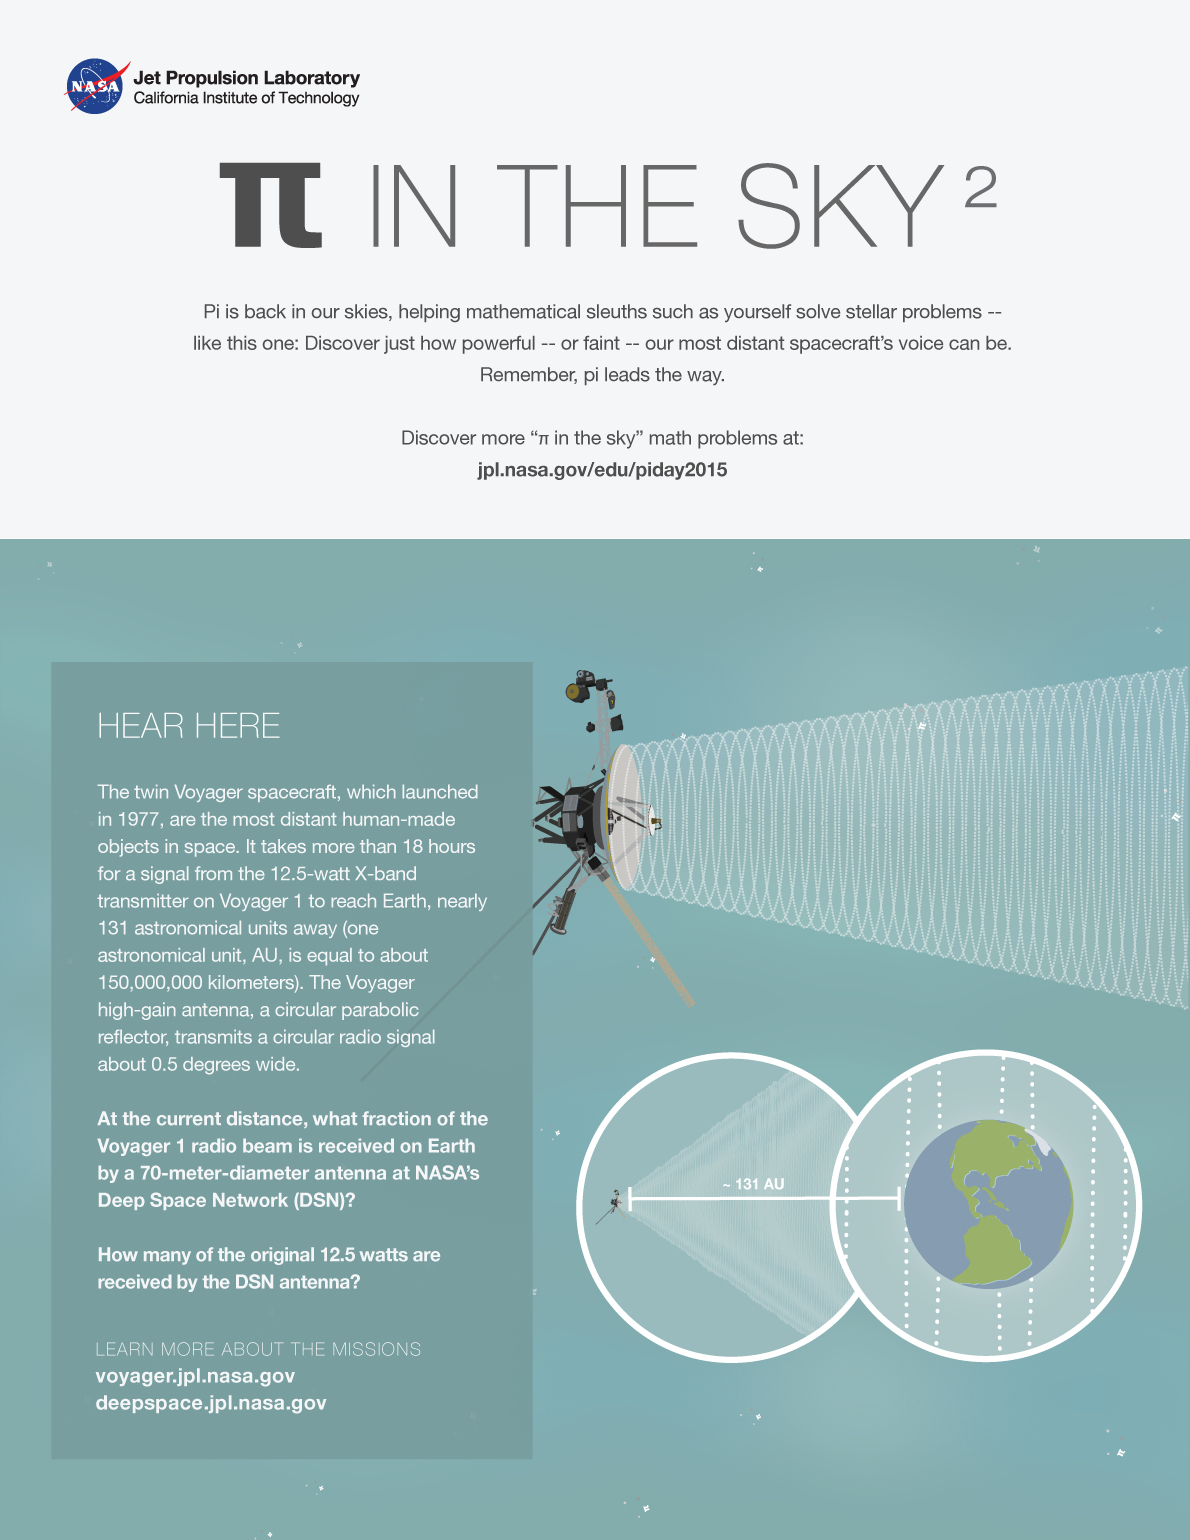 Pi in the Sky 2 Infographic